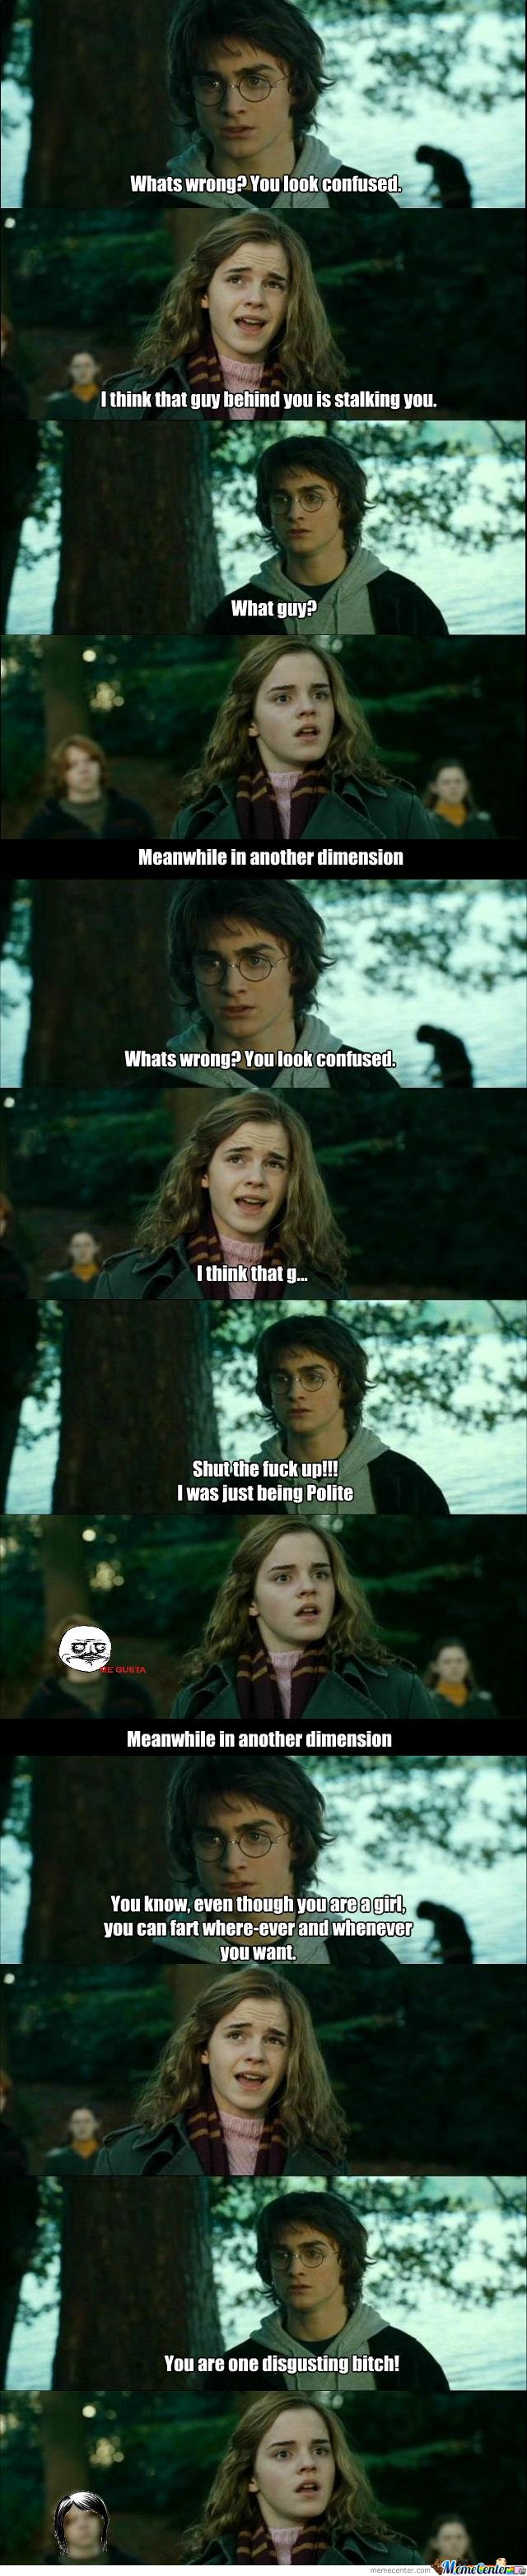 Hey hermione whats wrong?